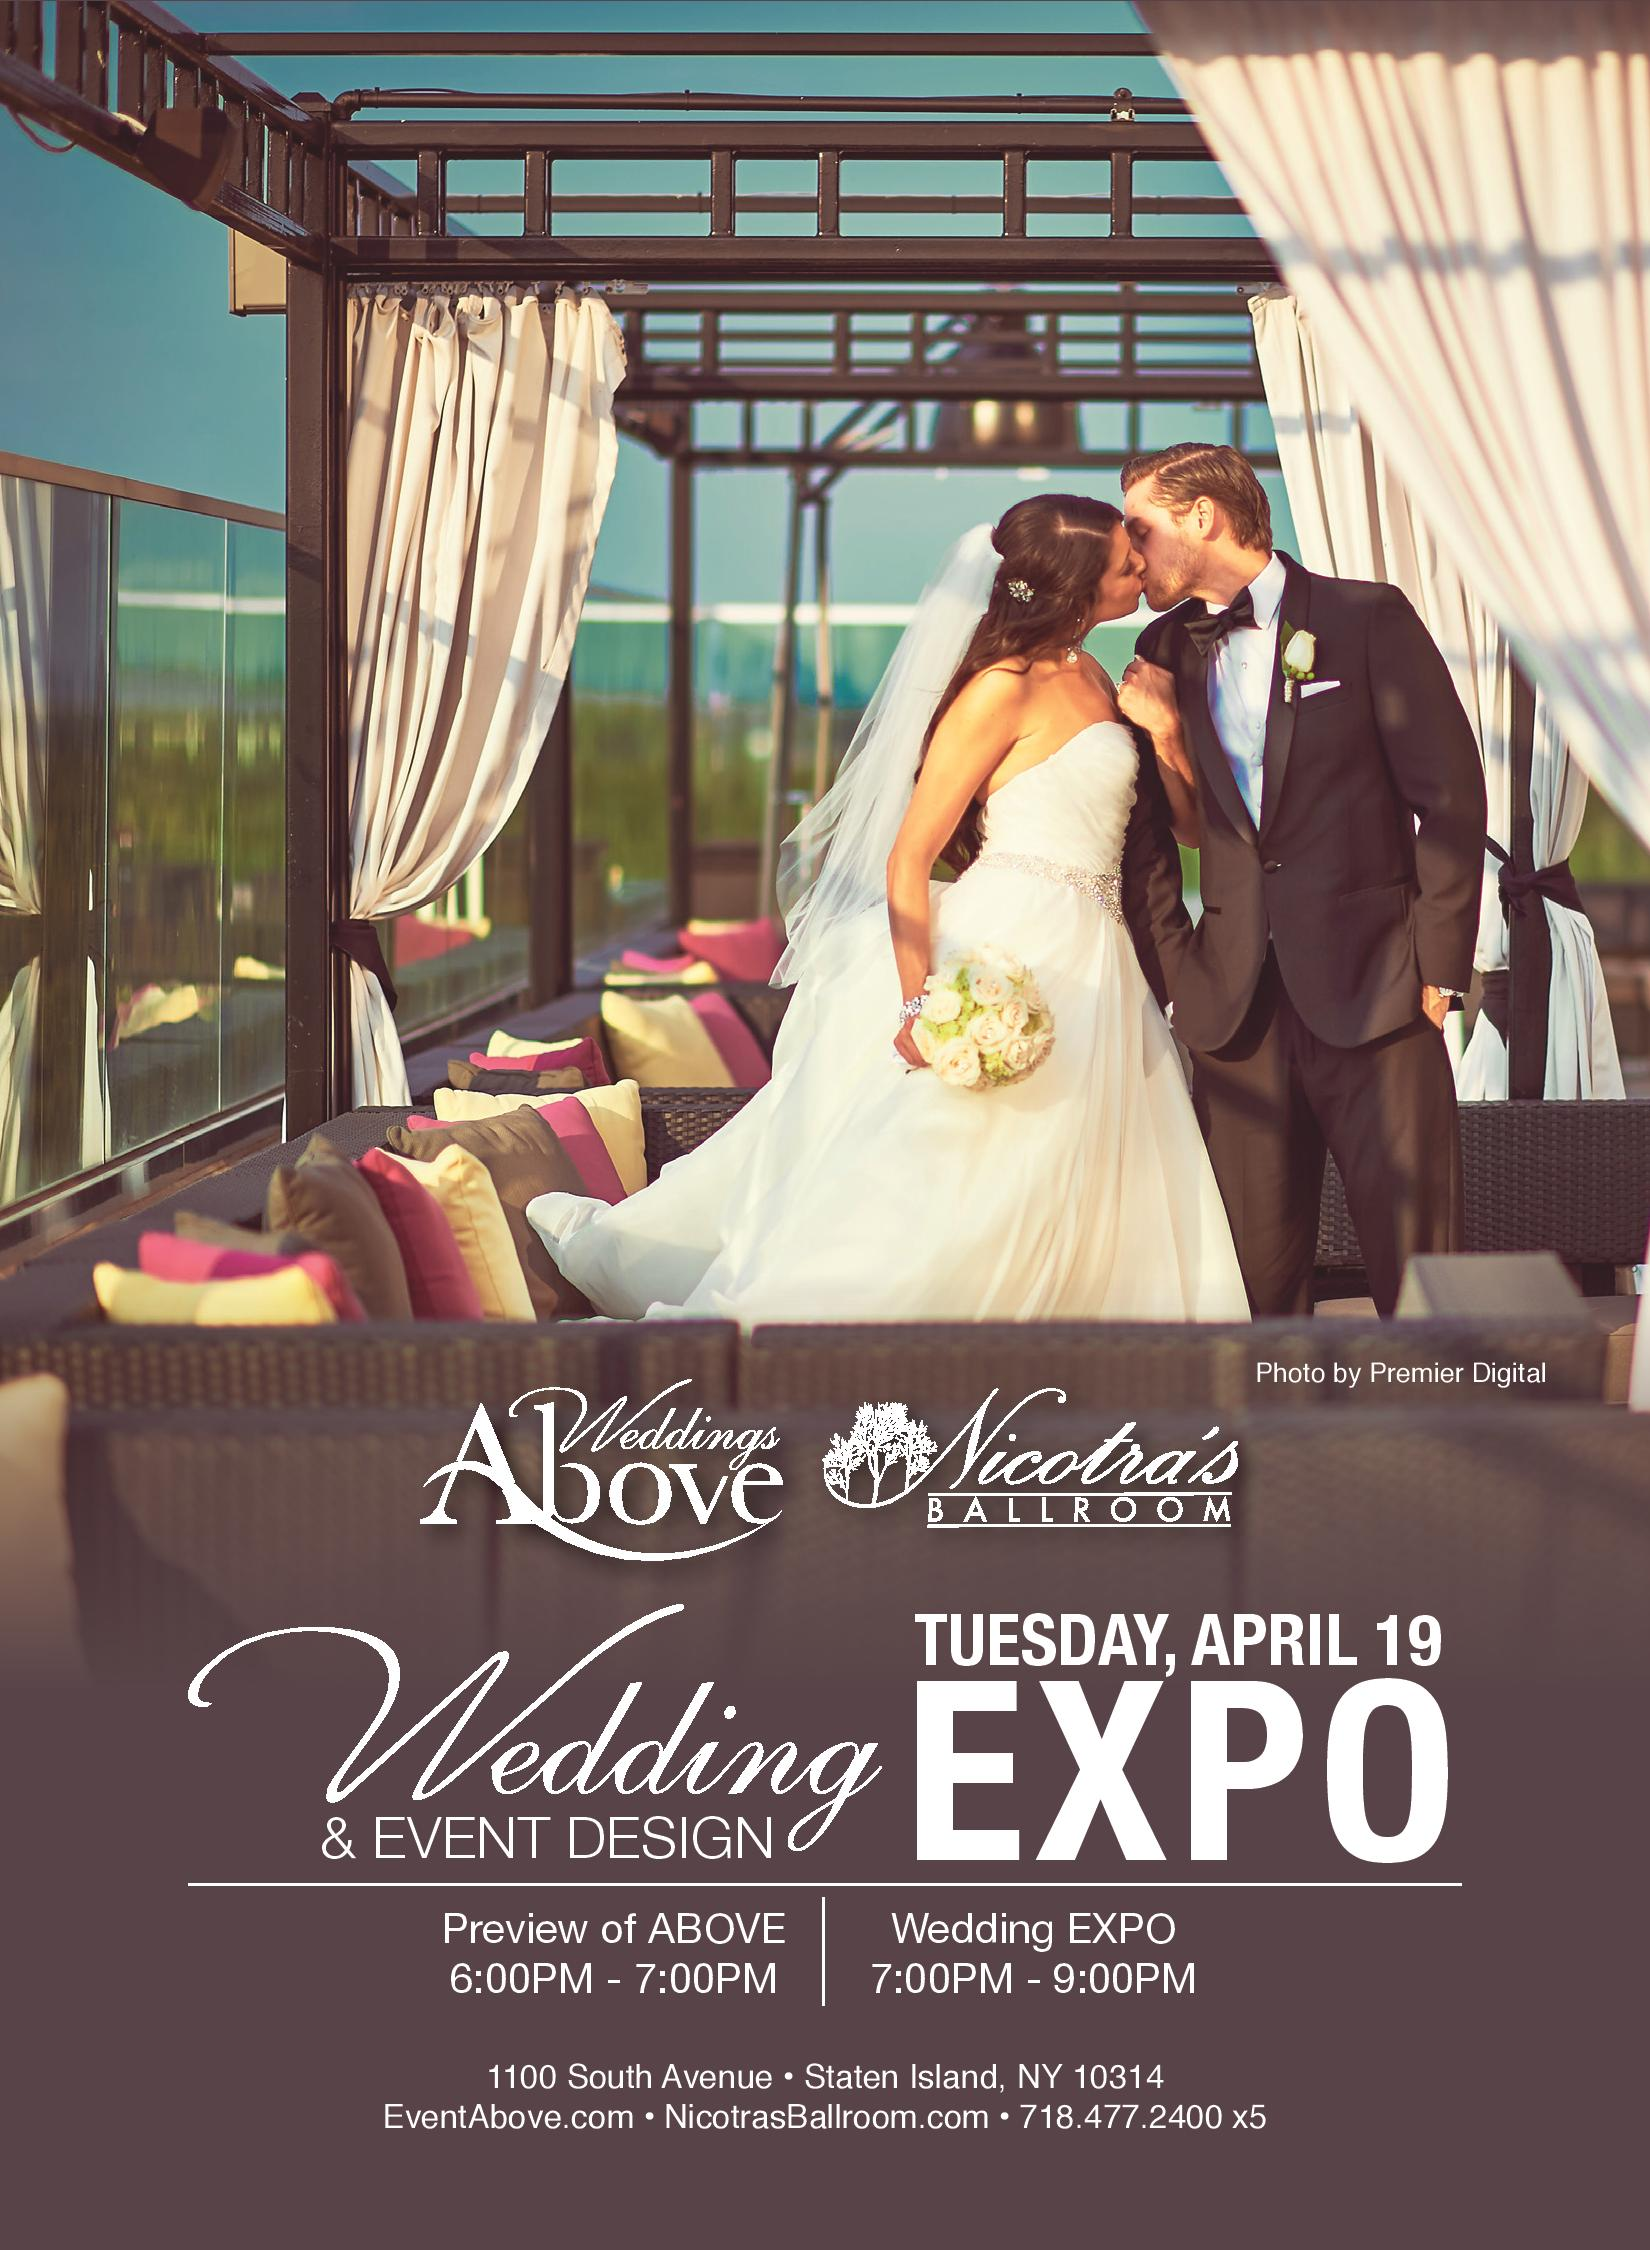 Wedding and event design expo April 19